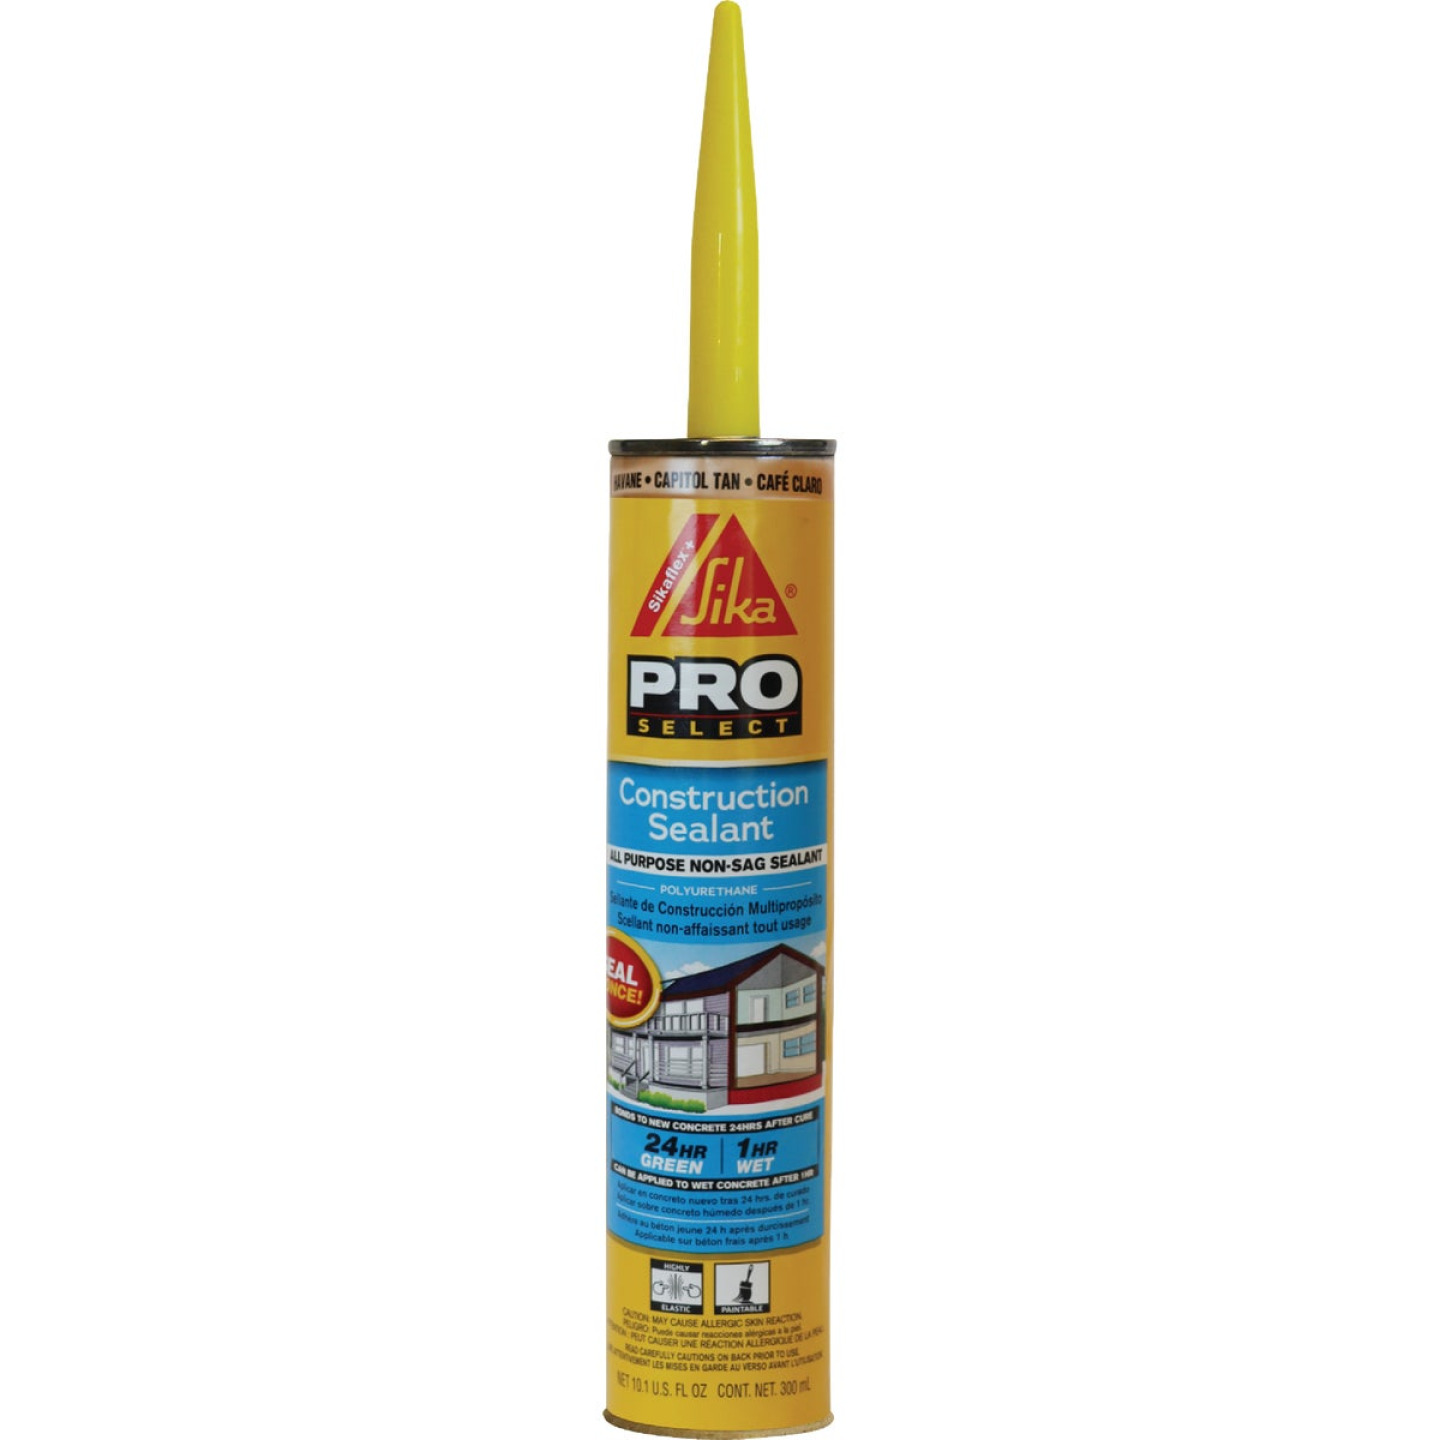 Sikaflex Sika 10.1 Oz. Pro Select Construction Polyurethane Sealant, Tan Image 1